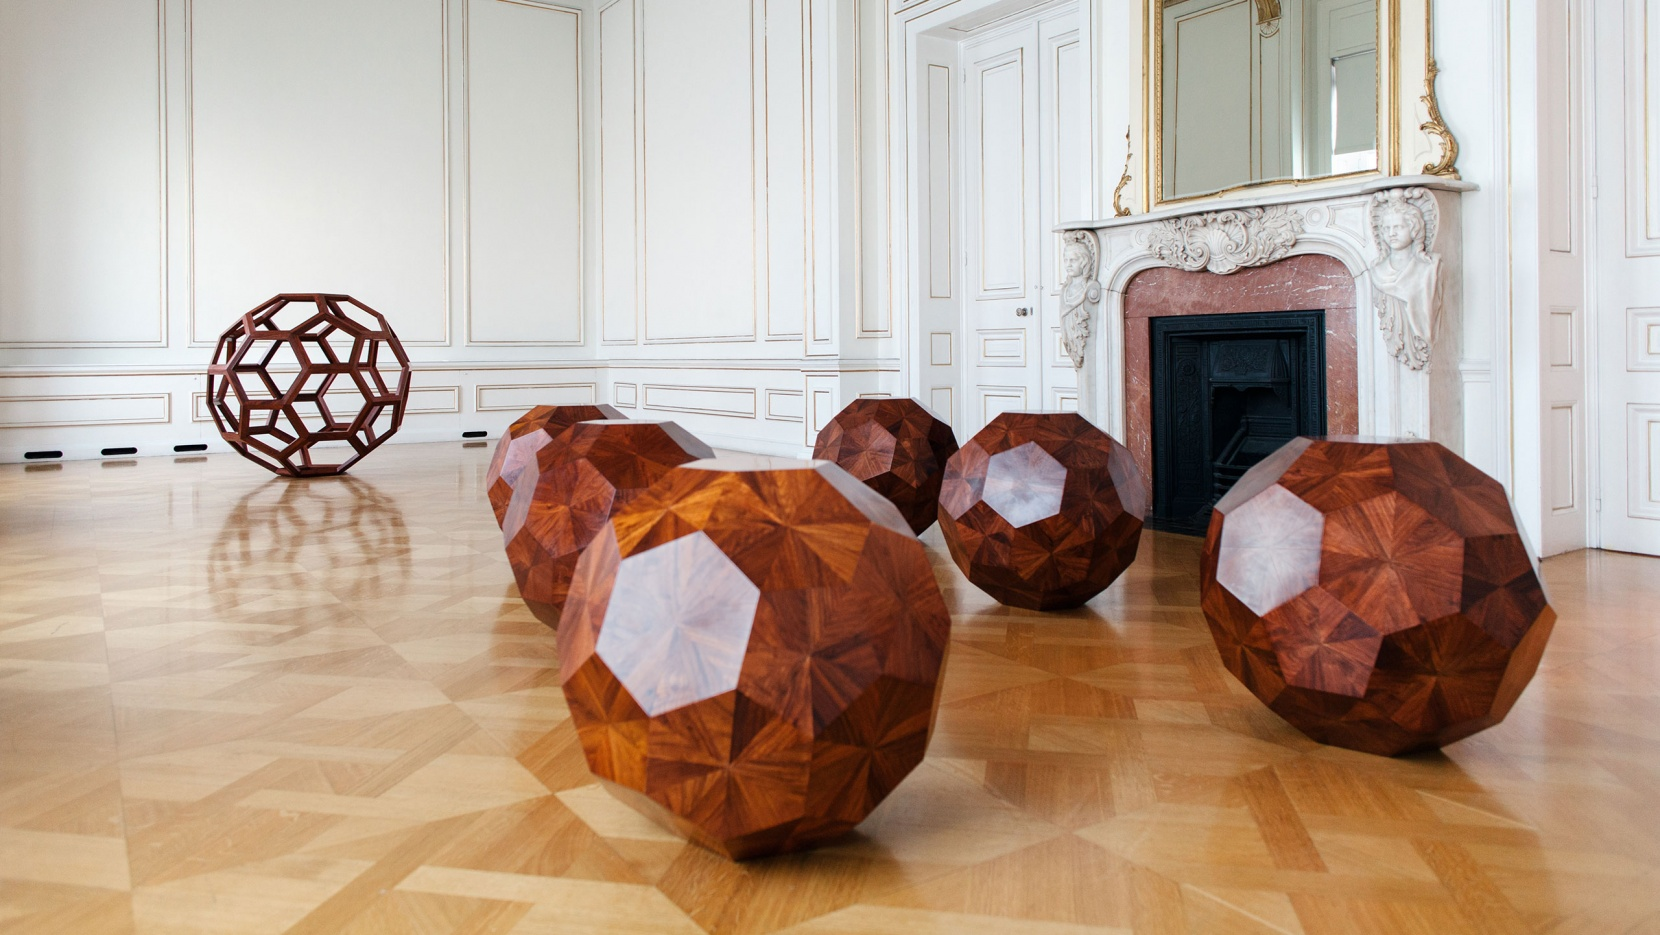 Greece Meets China In The Ai Weiwei At Cycladic Exhibit